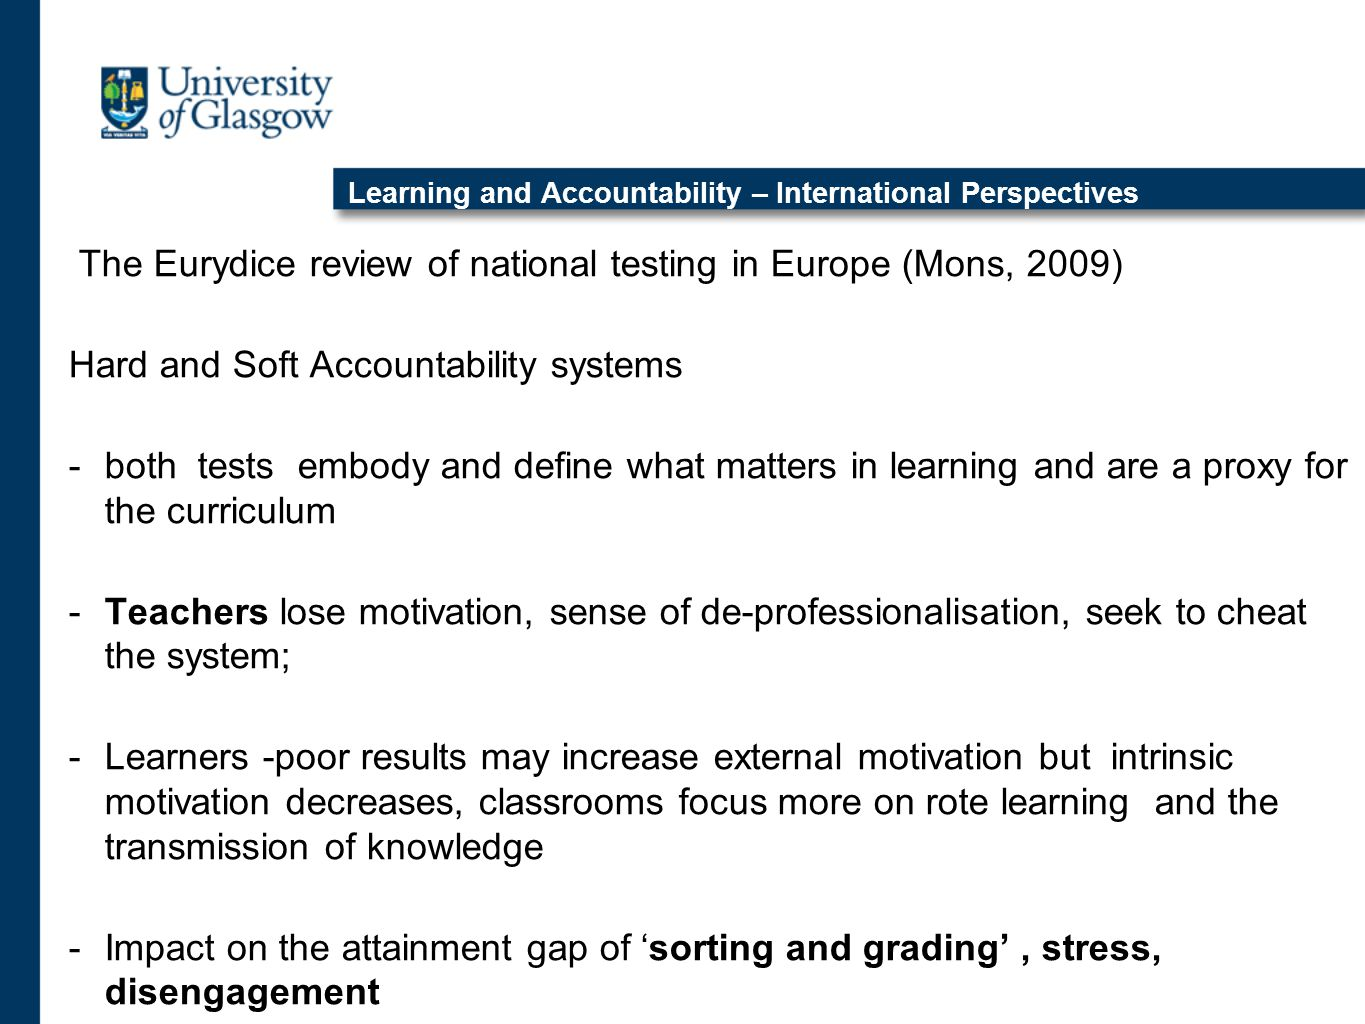 Learning and Accountability – International Perspectives The Eurydice review of national testing in Europe (Mons, 2009) Hard and Soft Accountability systems -both tests embody and define what matters in learning and are a proxy for the curriculum -Teachers lose motivation, sense of de-professionalisation, seek to cheat the system; -Learners -poor results may increase external motivation but intrinsic motivation decreases, classrooms focus more on rote learning and the transmission of knowledge -Impact on the attainment gap of 'sorting and grading', stress, disengagement